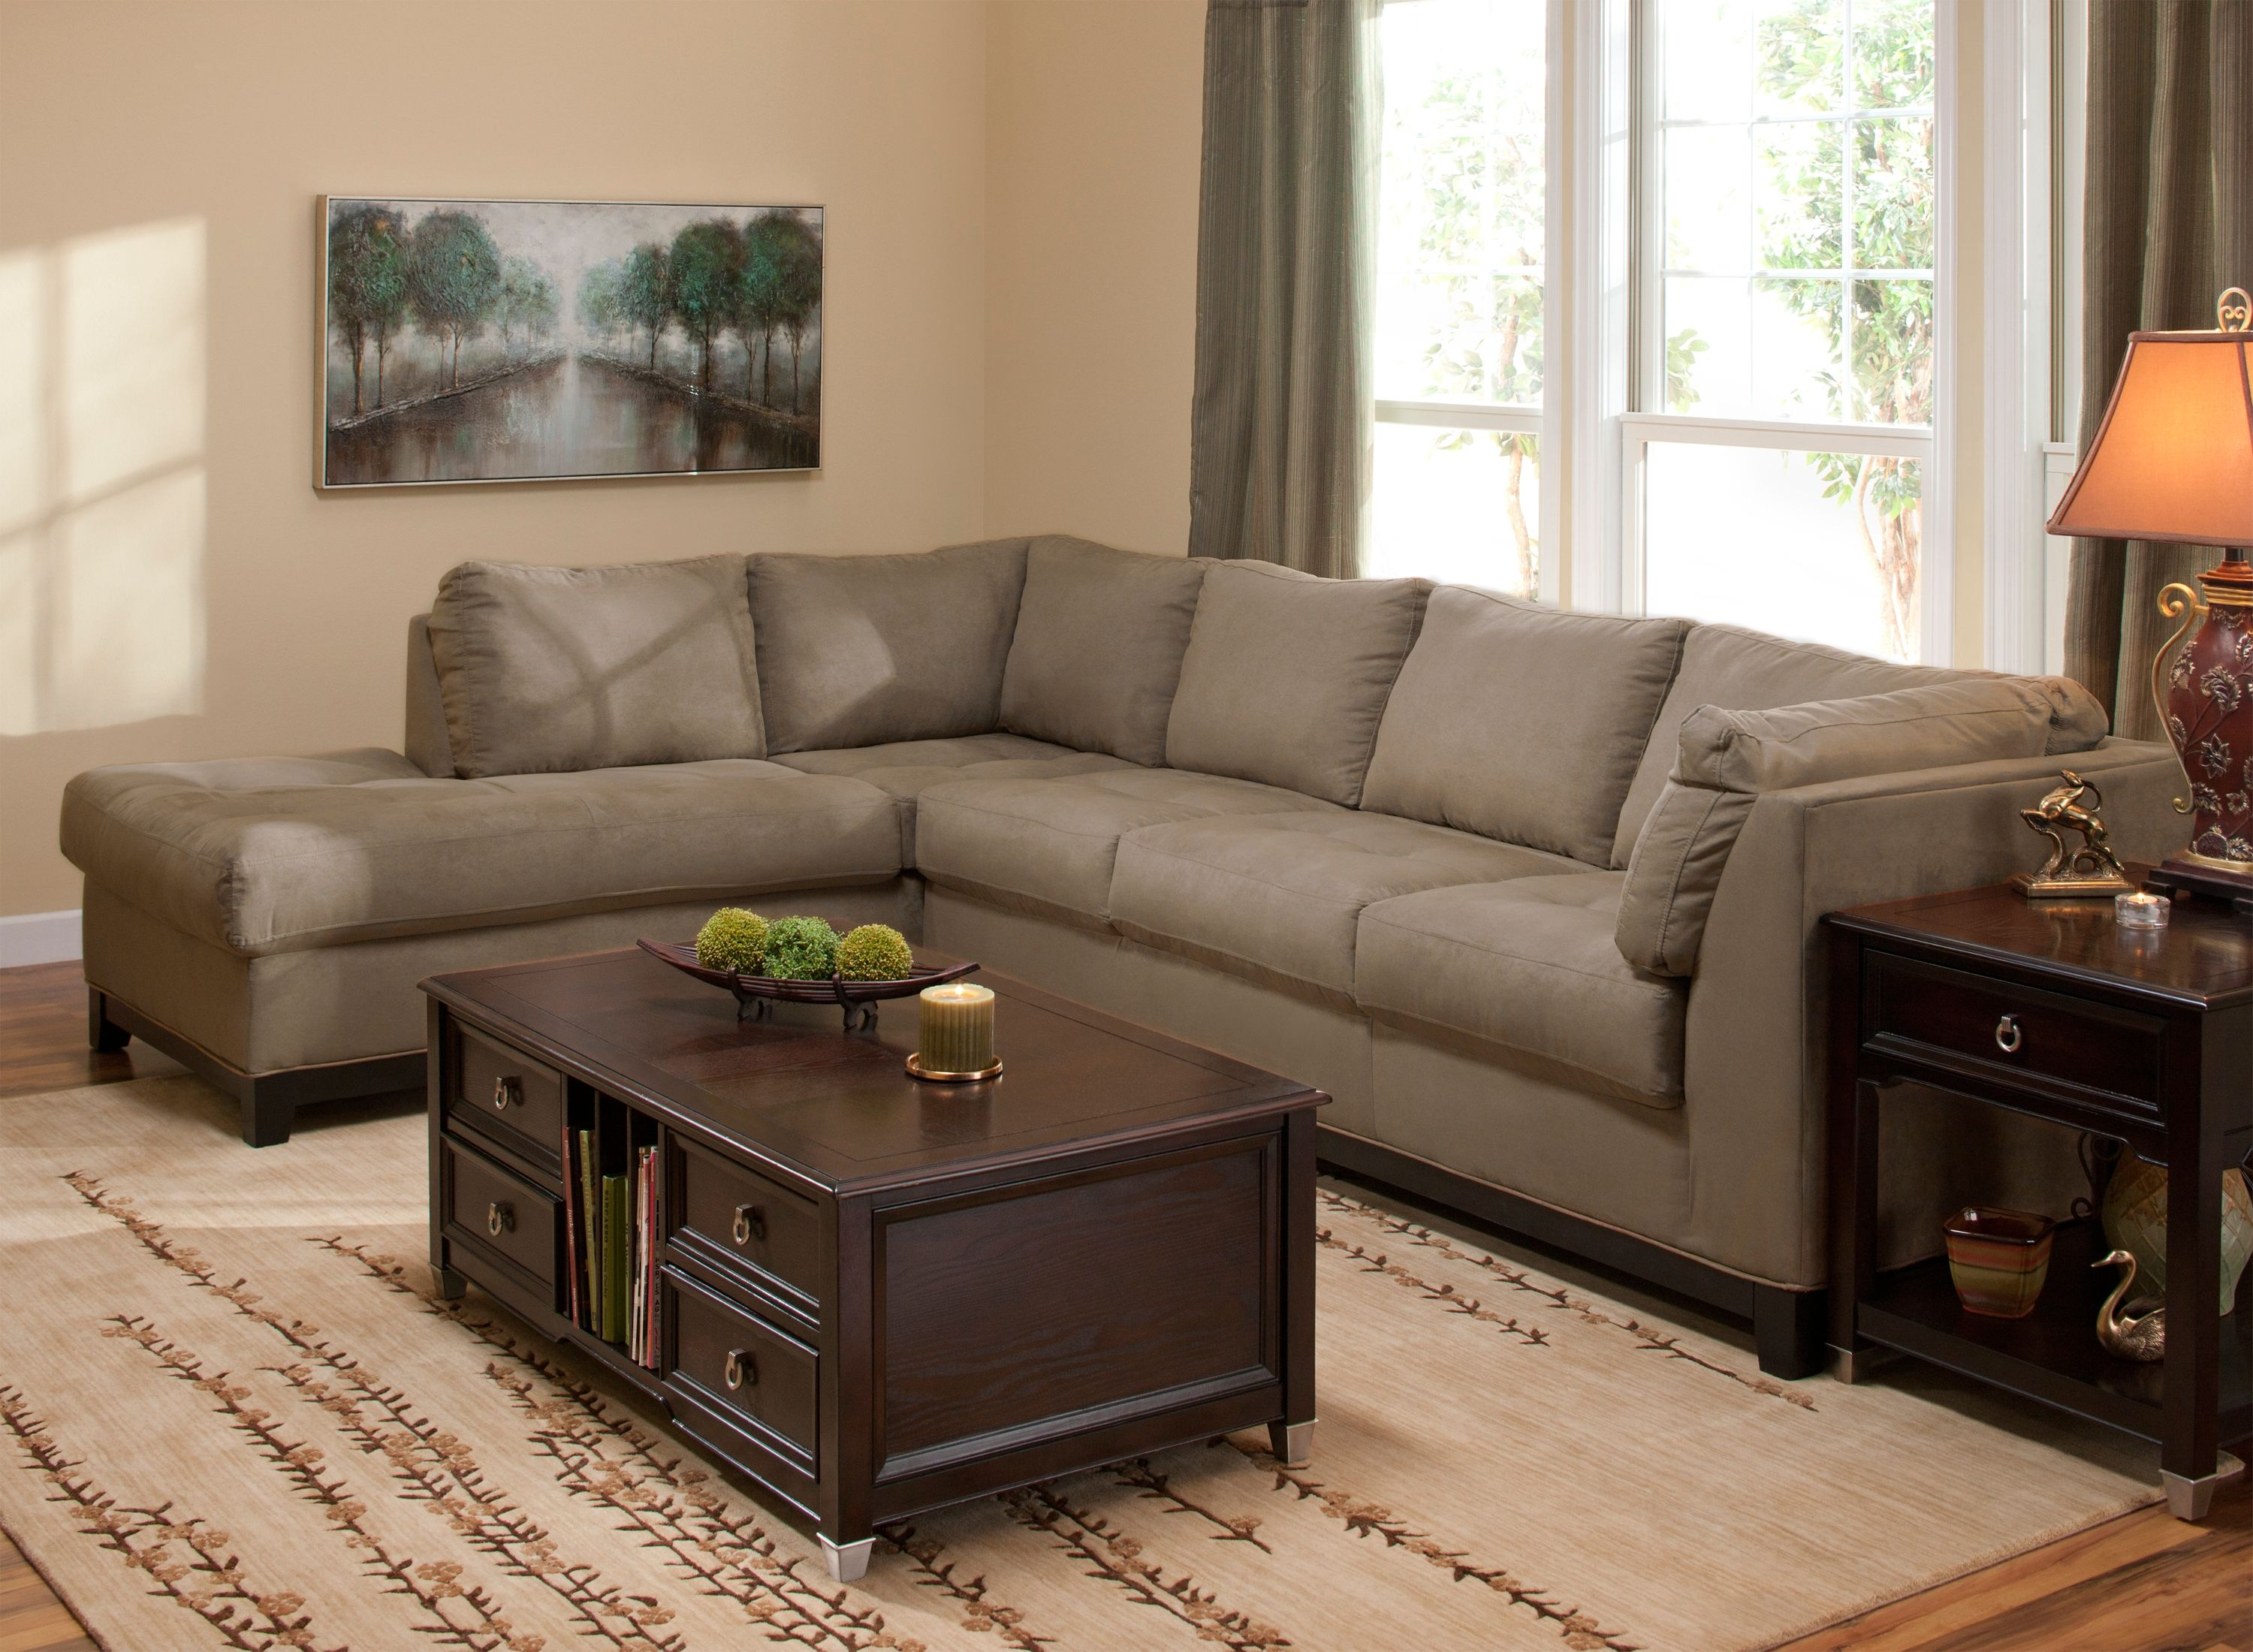 This Contemporary Kathy Ireland Home Wellsley 2 Piece Microfiber Sectional Sofa Features Mocha Colored That Ll Really Help Warm Up Your Living